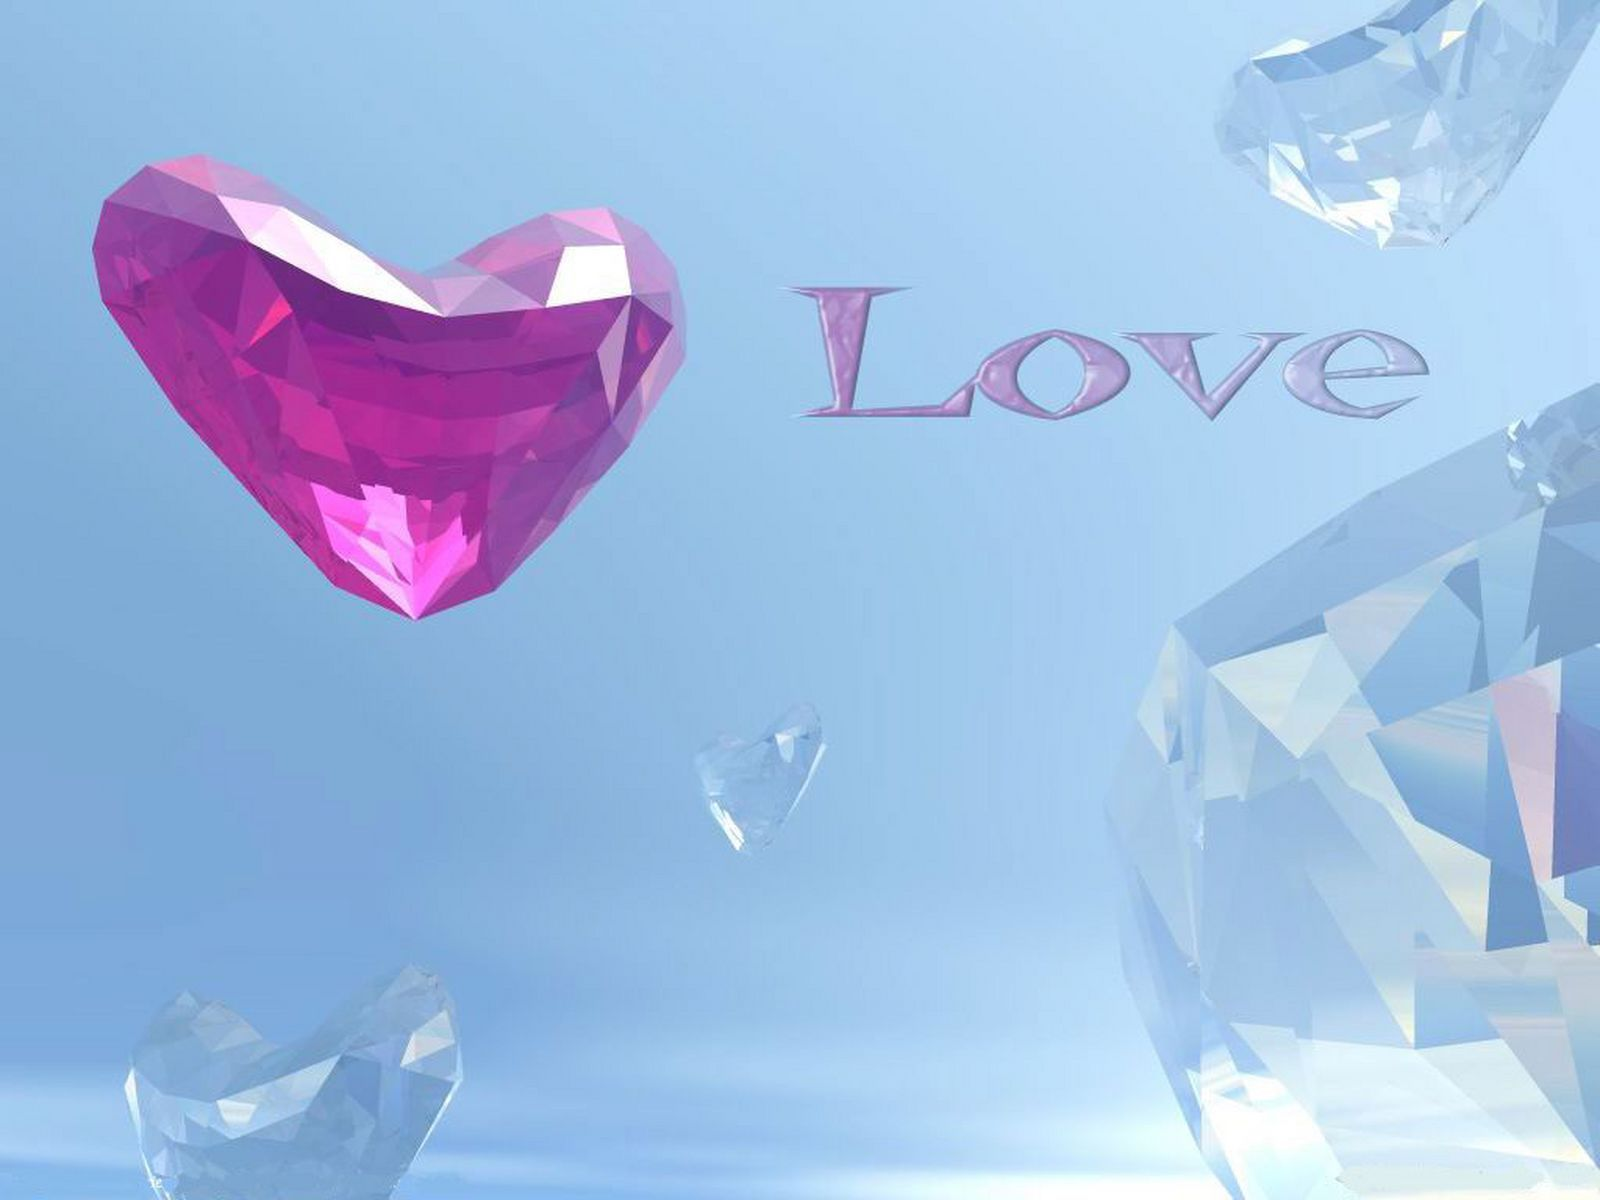 Love Wallpaper Of S : Mazapoint: Love Wallpapers